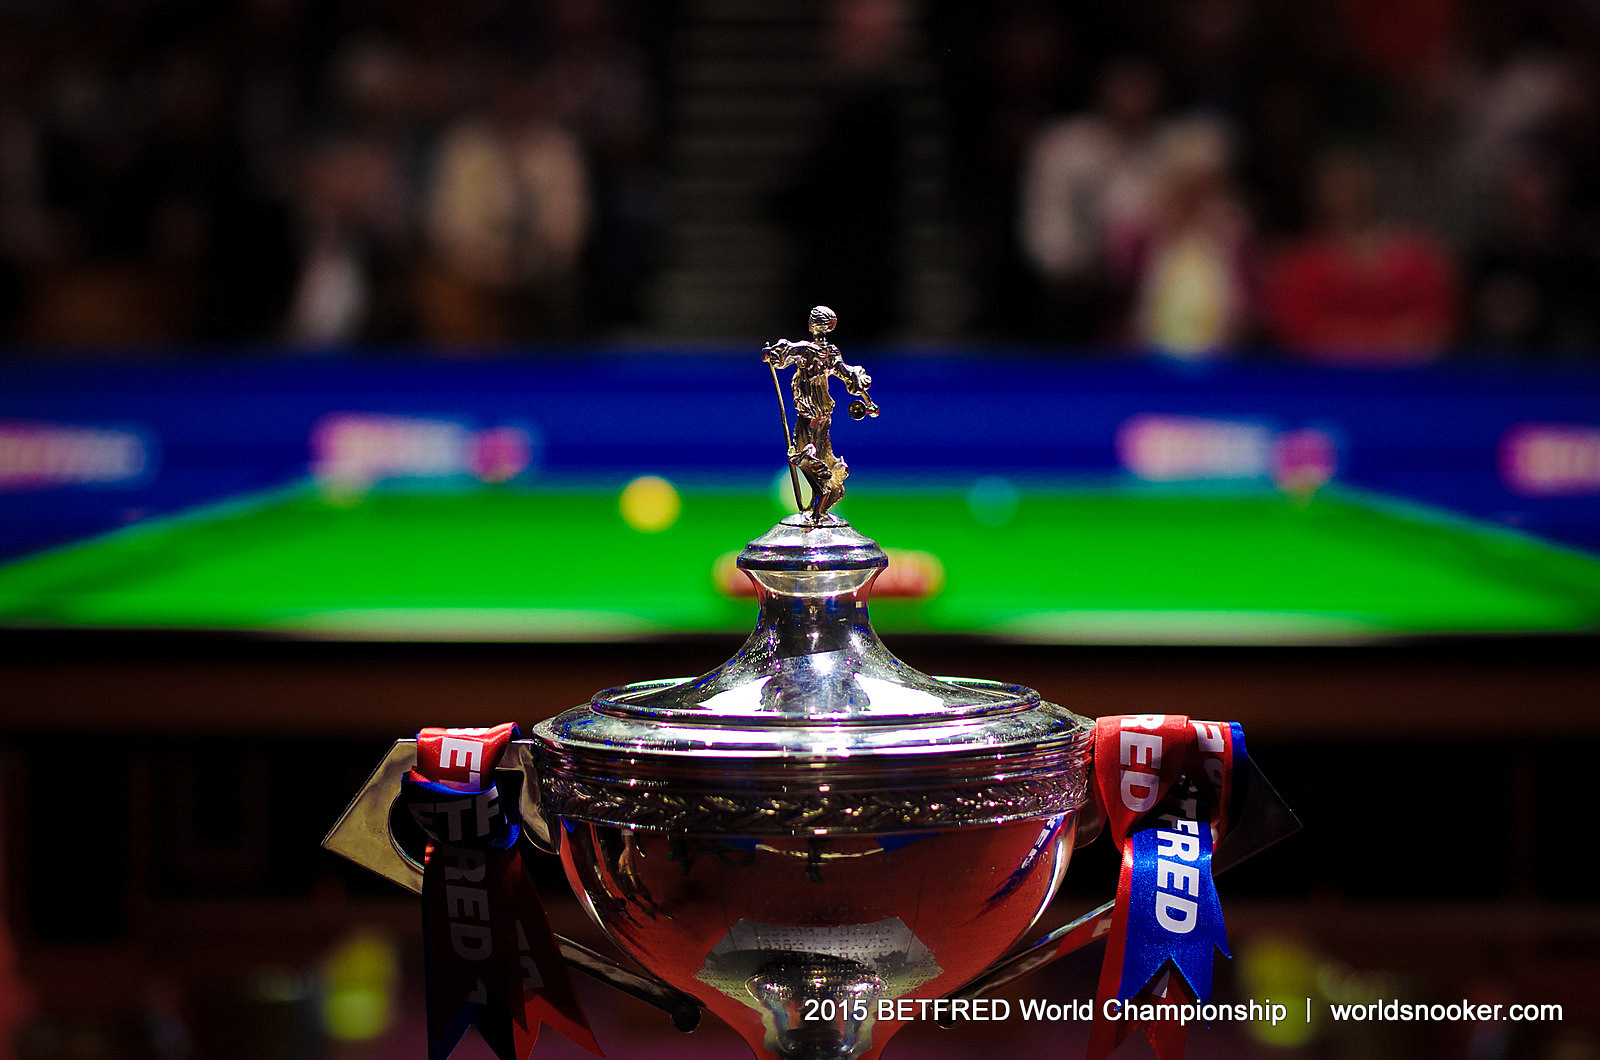 Remarkable, the Amateur snooker tournaments impossible